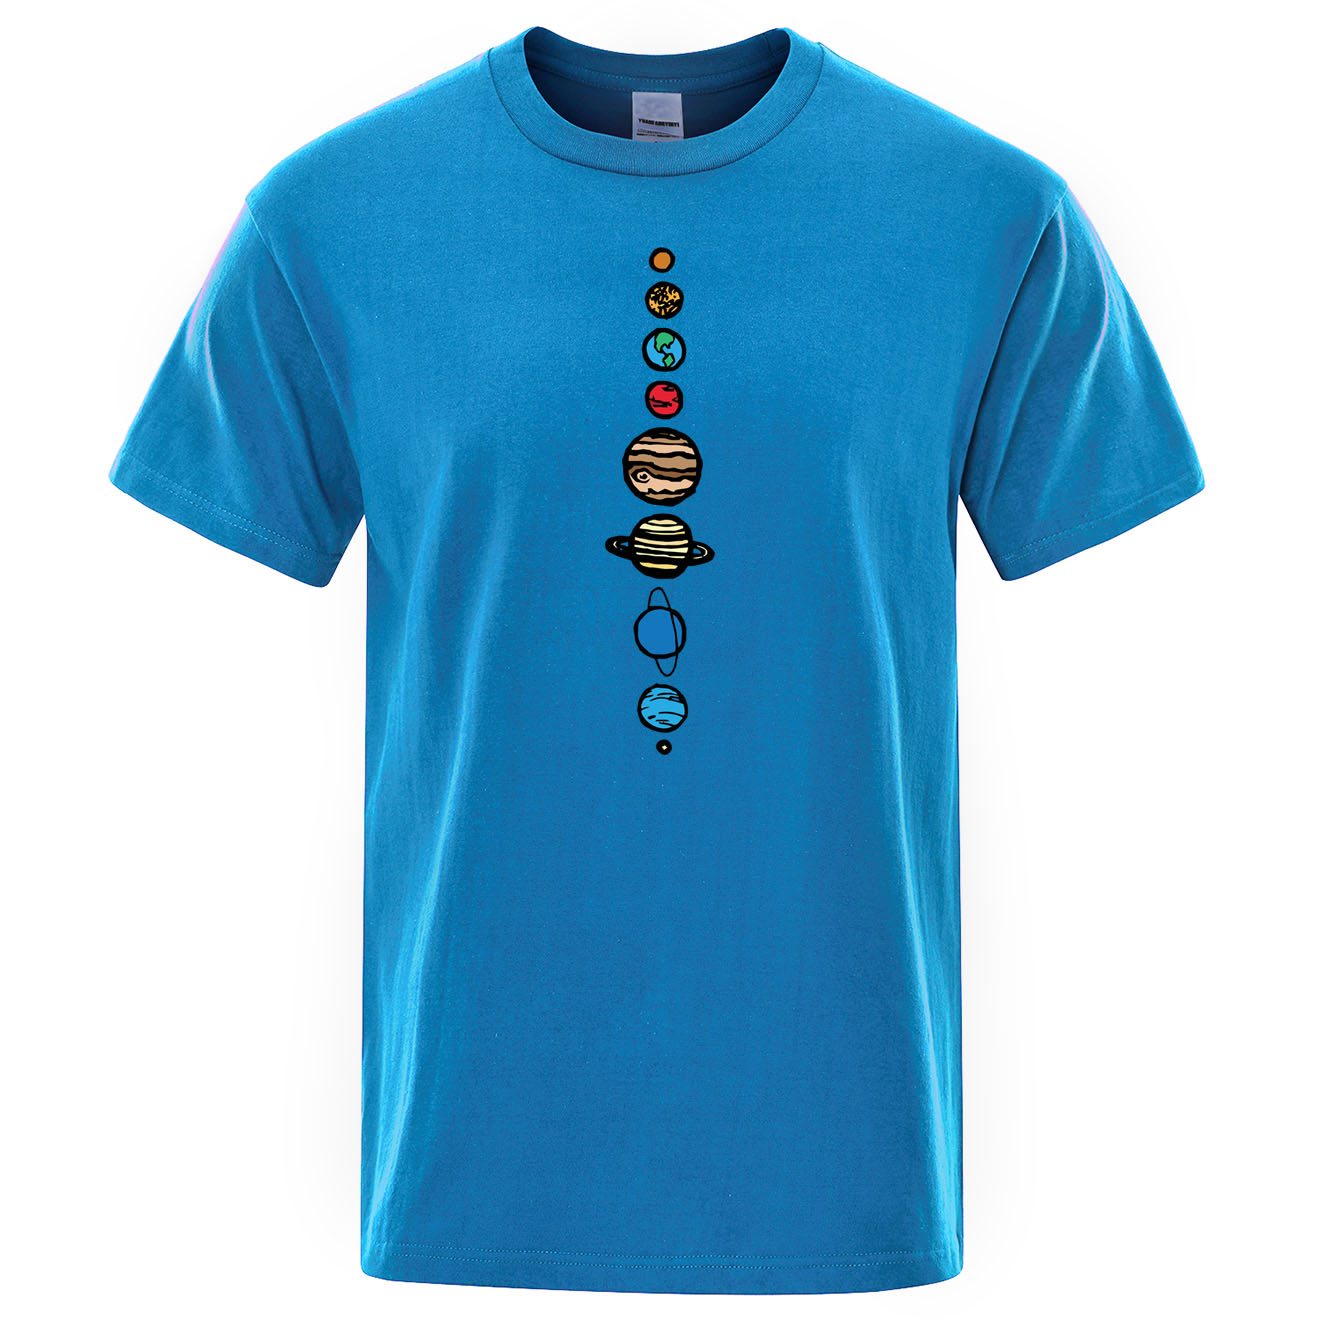 Nine Planets Mens T-Shirt Universe Solar System Men Tops Cotton Short Sleeves O-Neck T Shirt Planets Colour Vintage Tee Shirt image